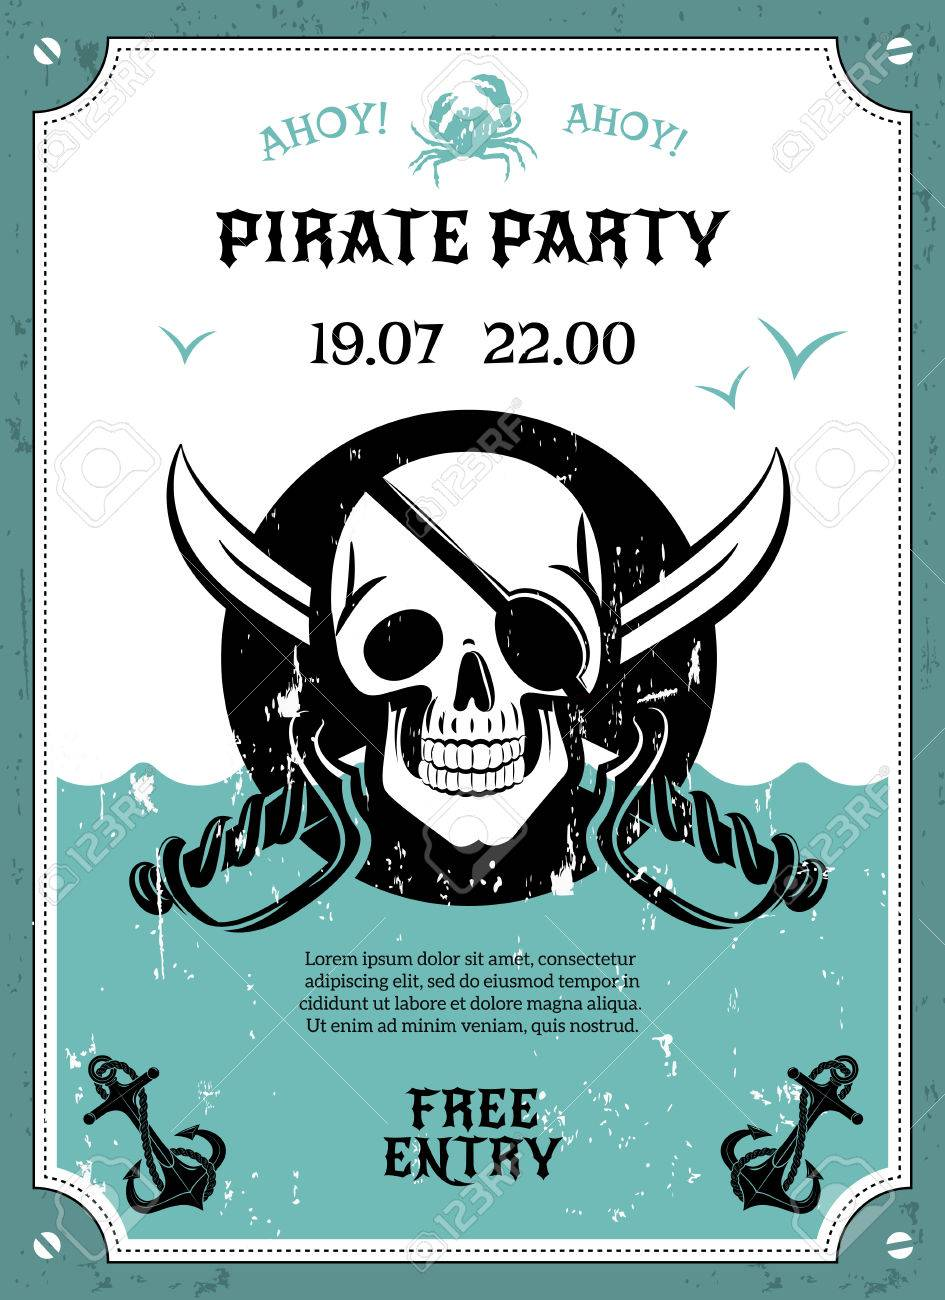 Pirate Party Free Entry Announcement Poster With Skull Eye Pad Date And Time Abstract Vector